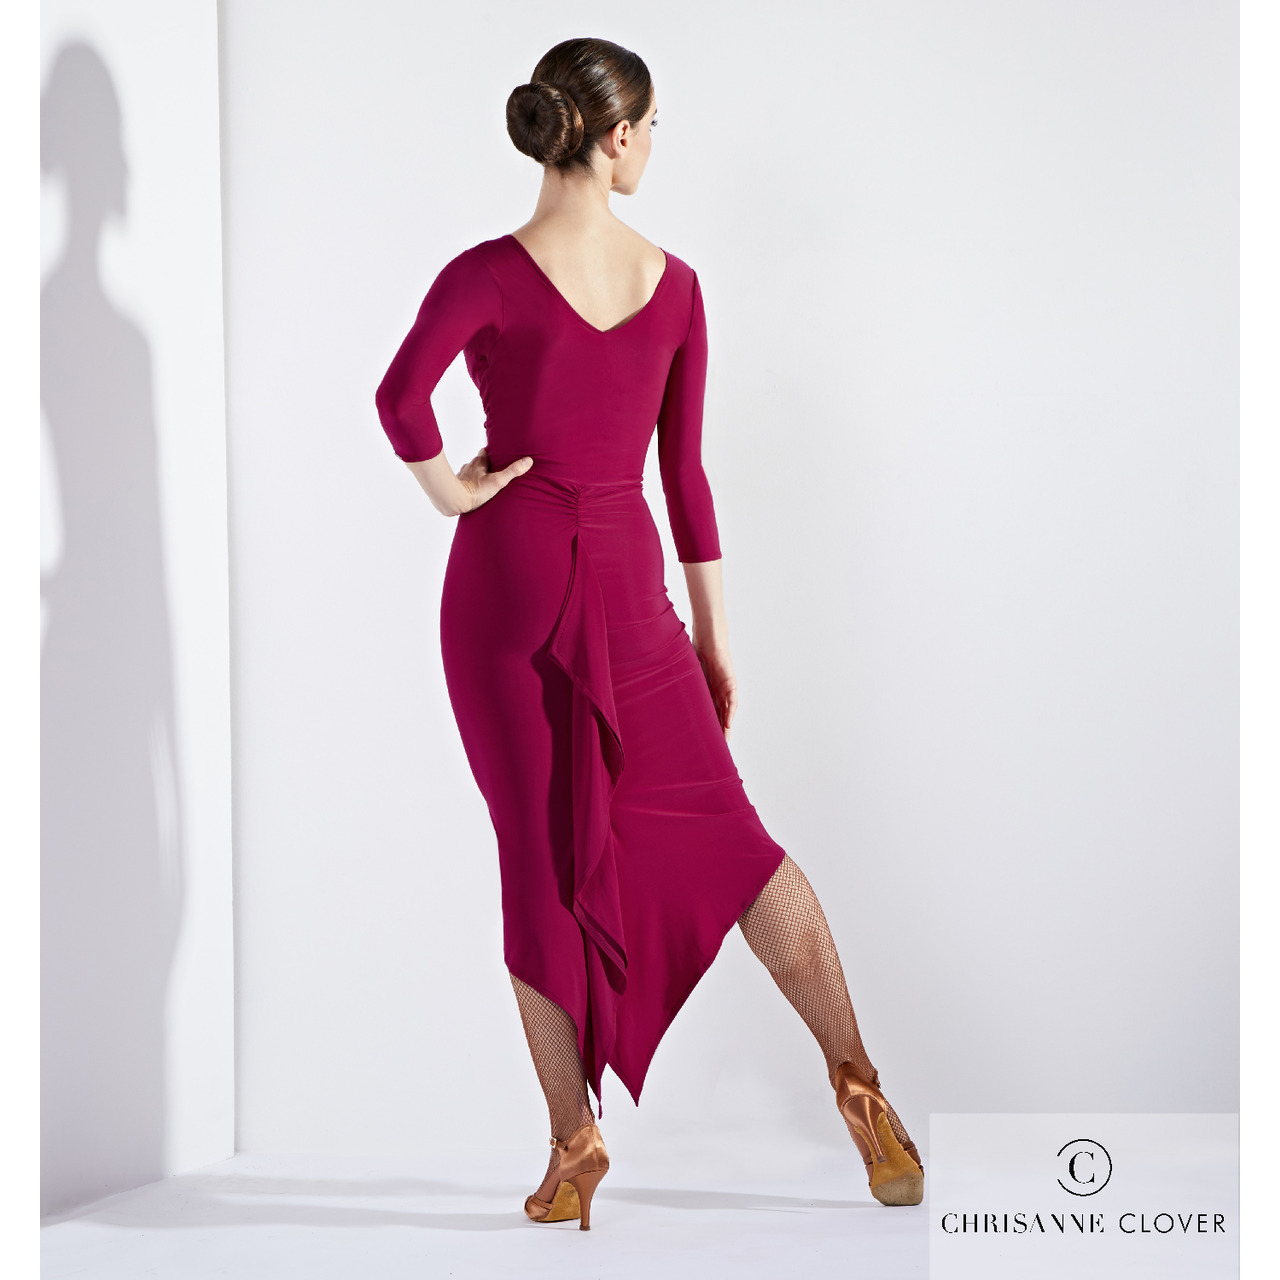 ECSTASY LATIN DRESS BLK & WINE (ПЛАТЬЕ)